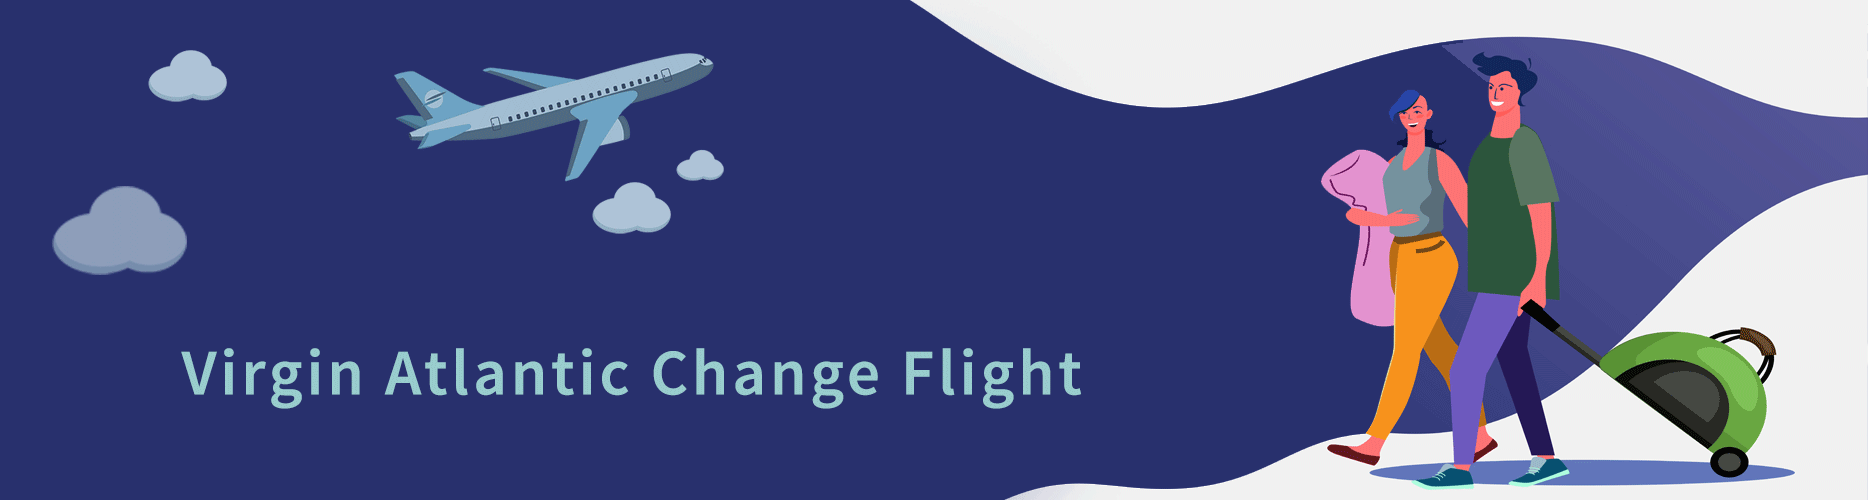 Virgin Atlantic Change Flight Policy